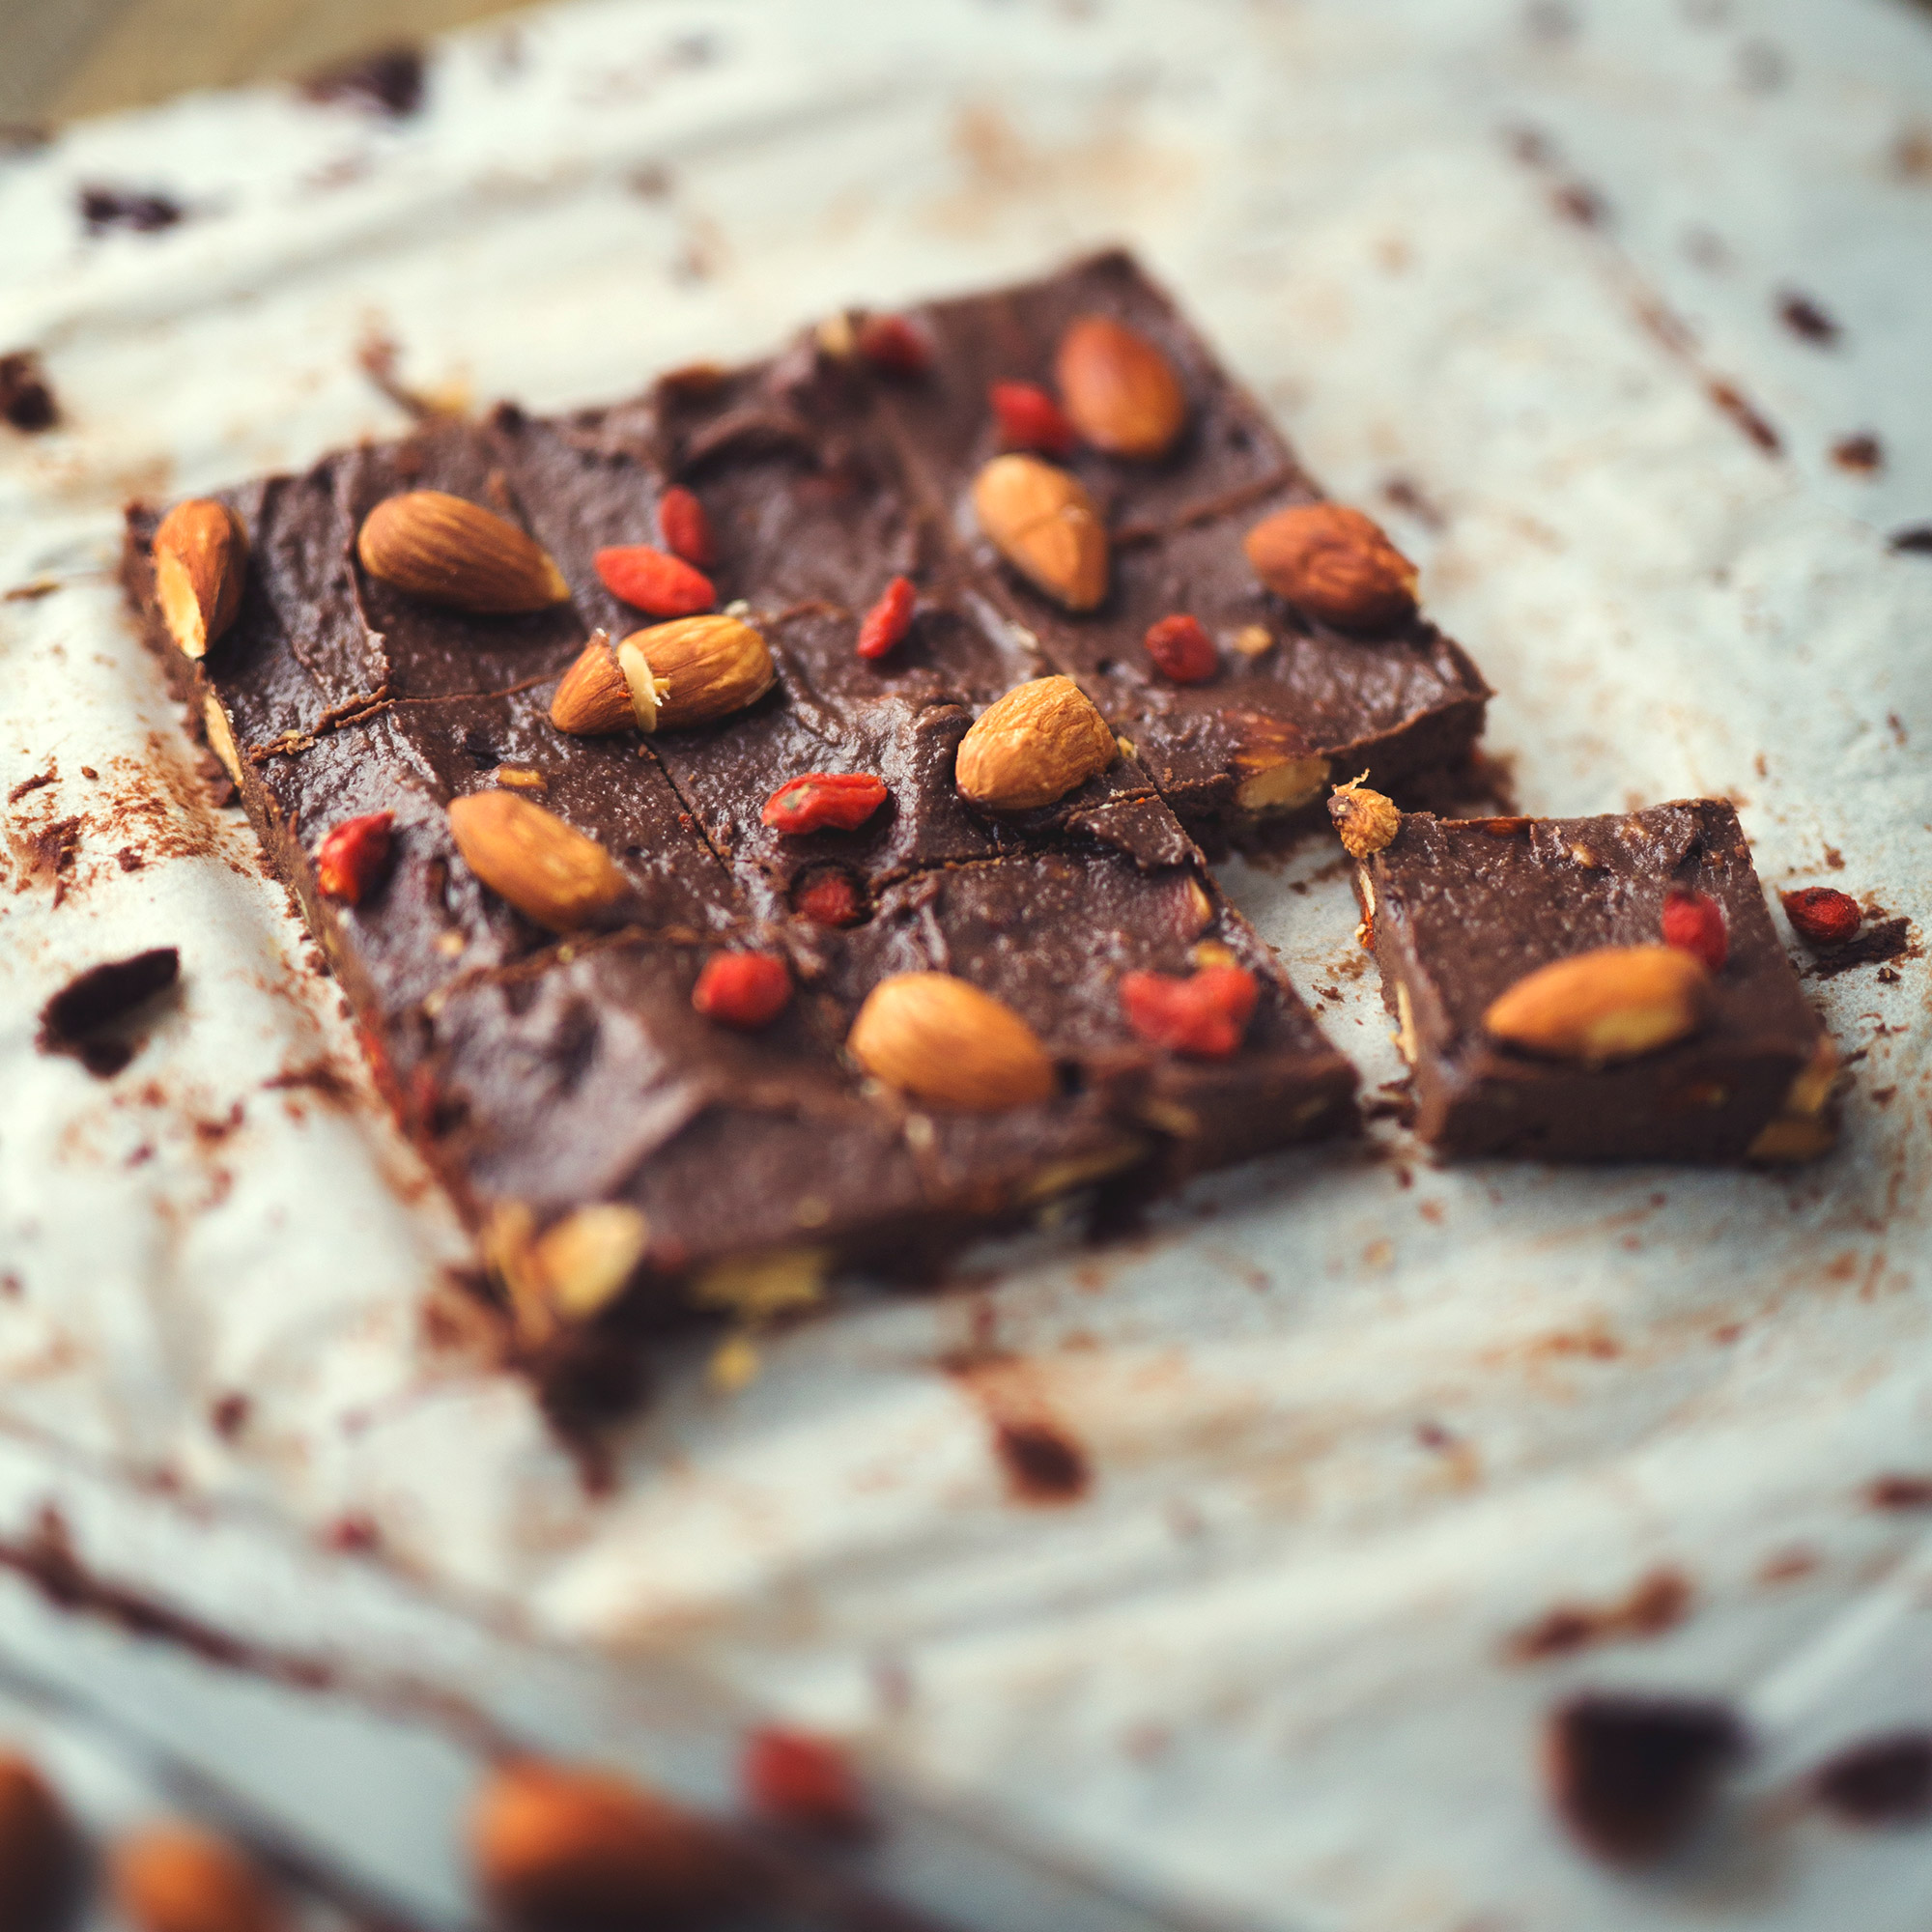 Roasted Almond and Goji Berry Chocolate Fudge